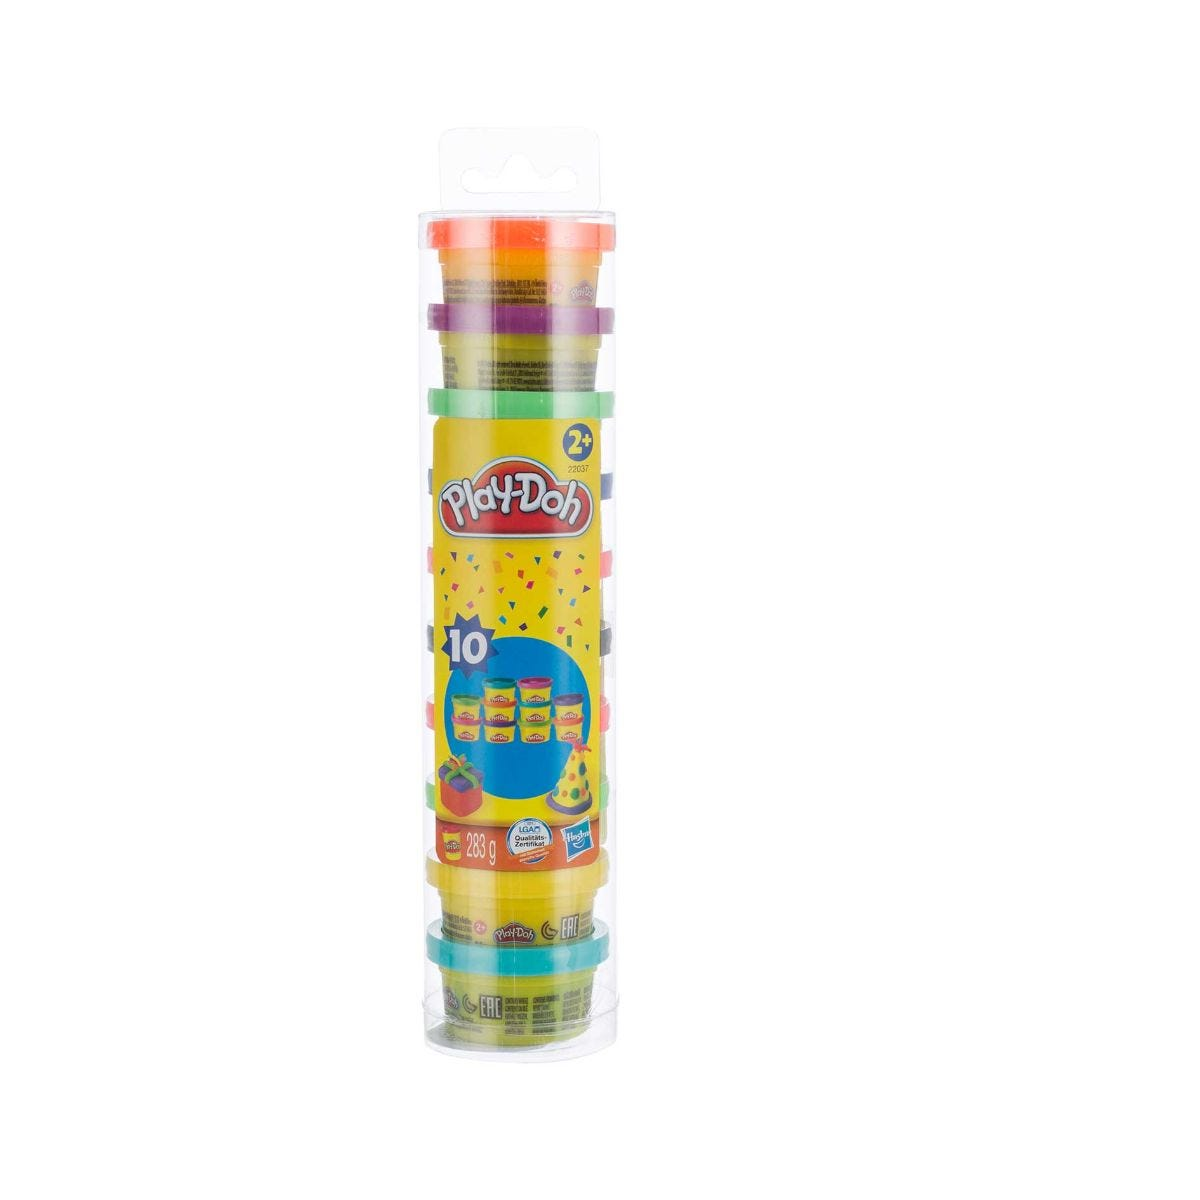 Play Doh Party Tube Pack of 10